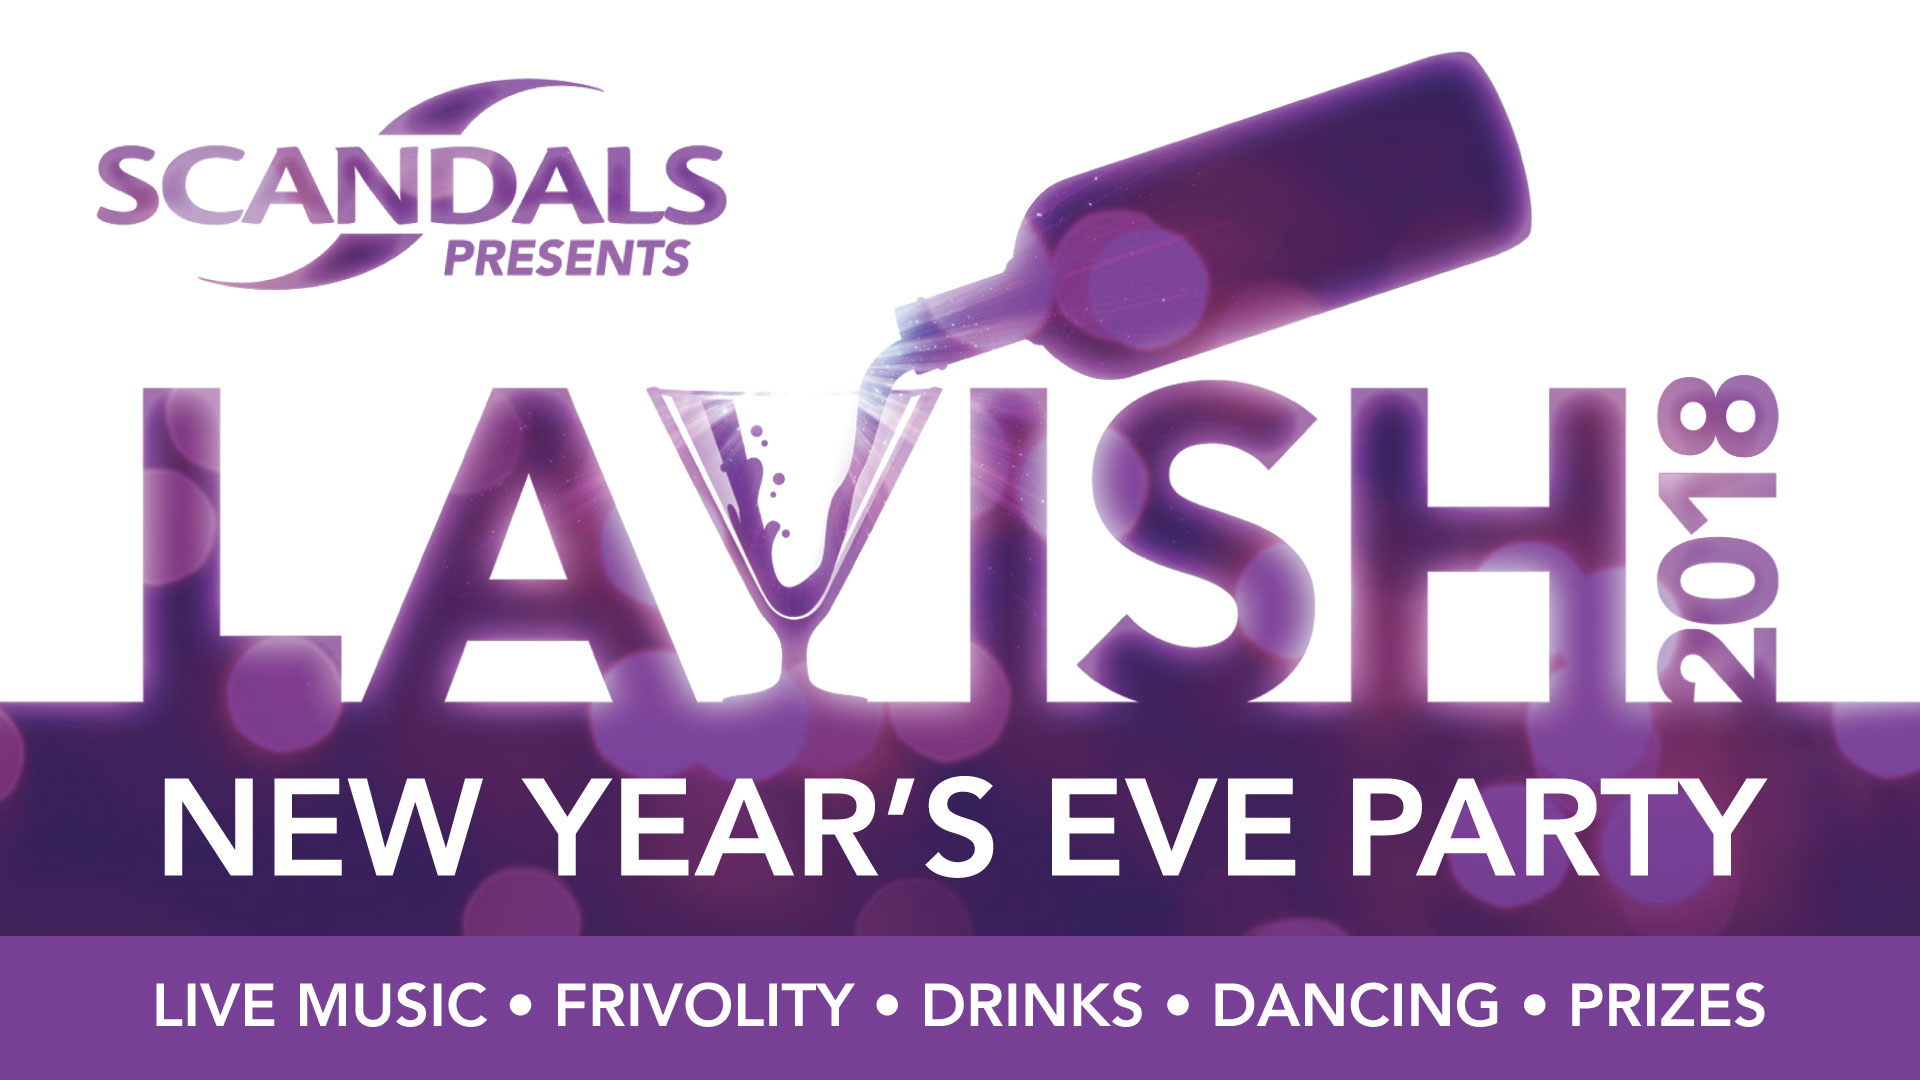 2018 is coming to an end and 2019 needs a warm welcoming so make sure to grab all of your friends and head to the most fabulous NYE party Portland has to offer! Drink specials all night long, plus Live Music by Return Flight as well as announcing the Ultimate Prize Winner from this year's Giving Tree! We will make sure to have a midnight cheers, so come early and stay all night long! We'll see you there!   Make sure to join the event on facebook here!